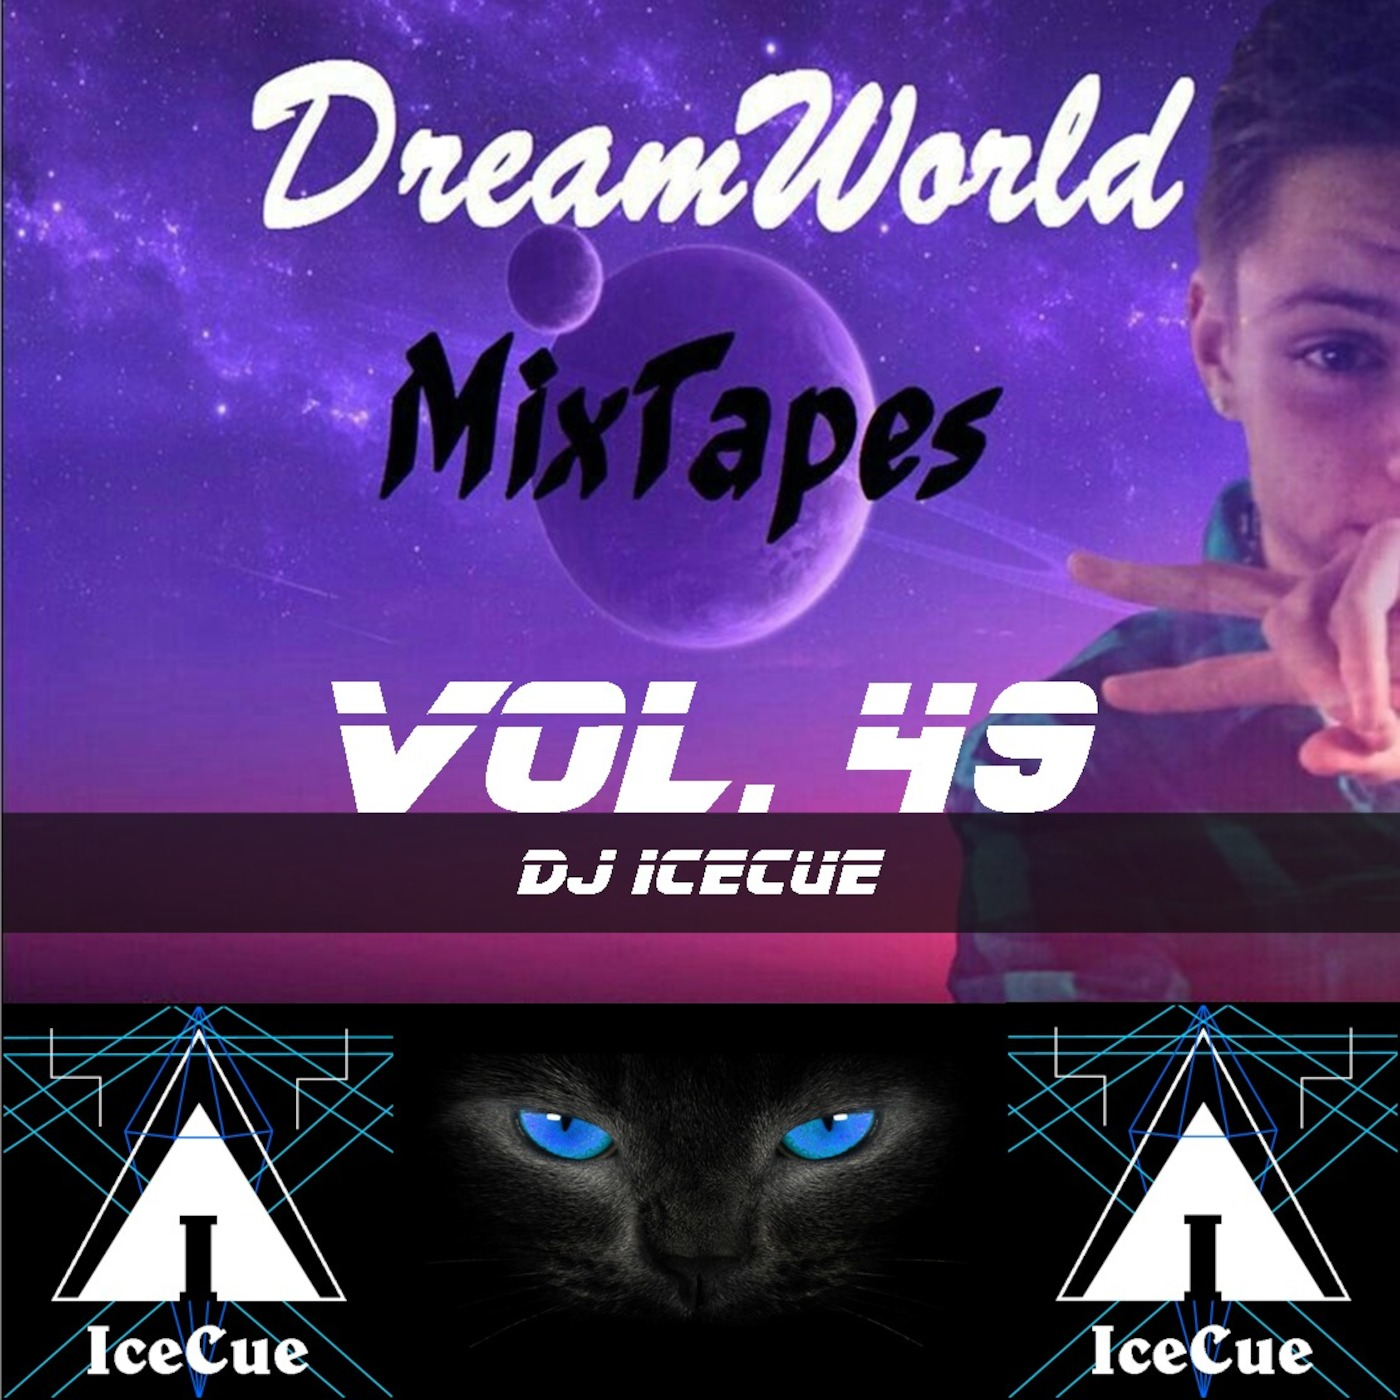 DreamWorld MixTapes - IceCue